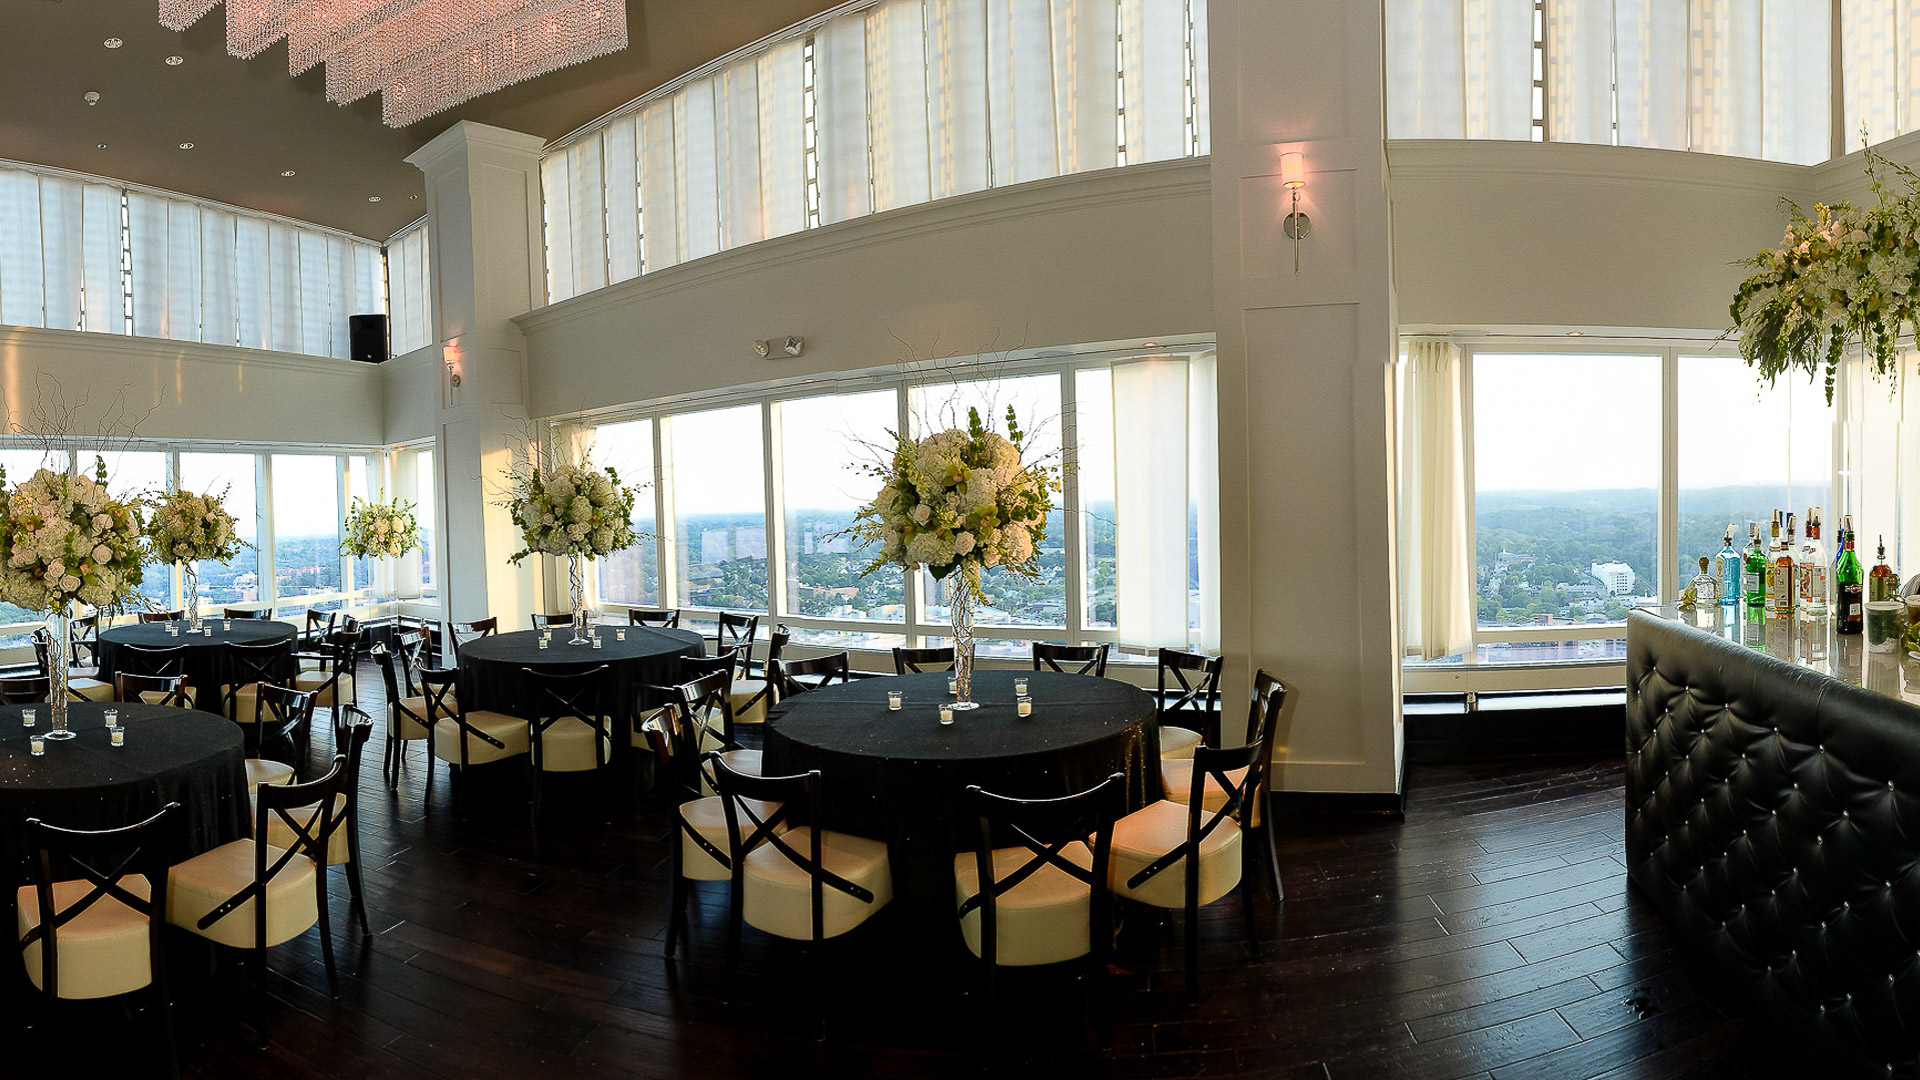 Ritz Carlton White Plains 42 restaurant wedding dinner setup wth Hudson Valley views